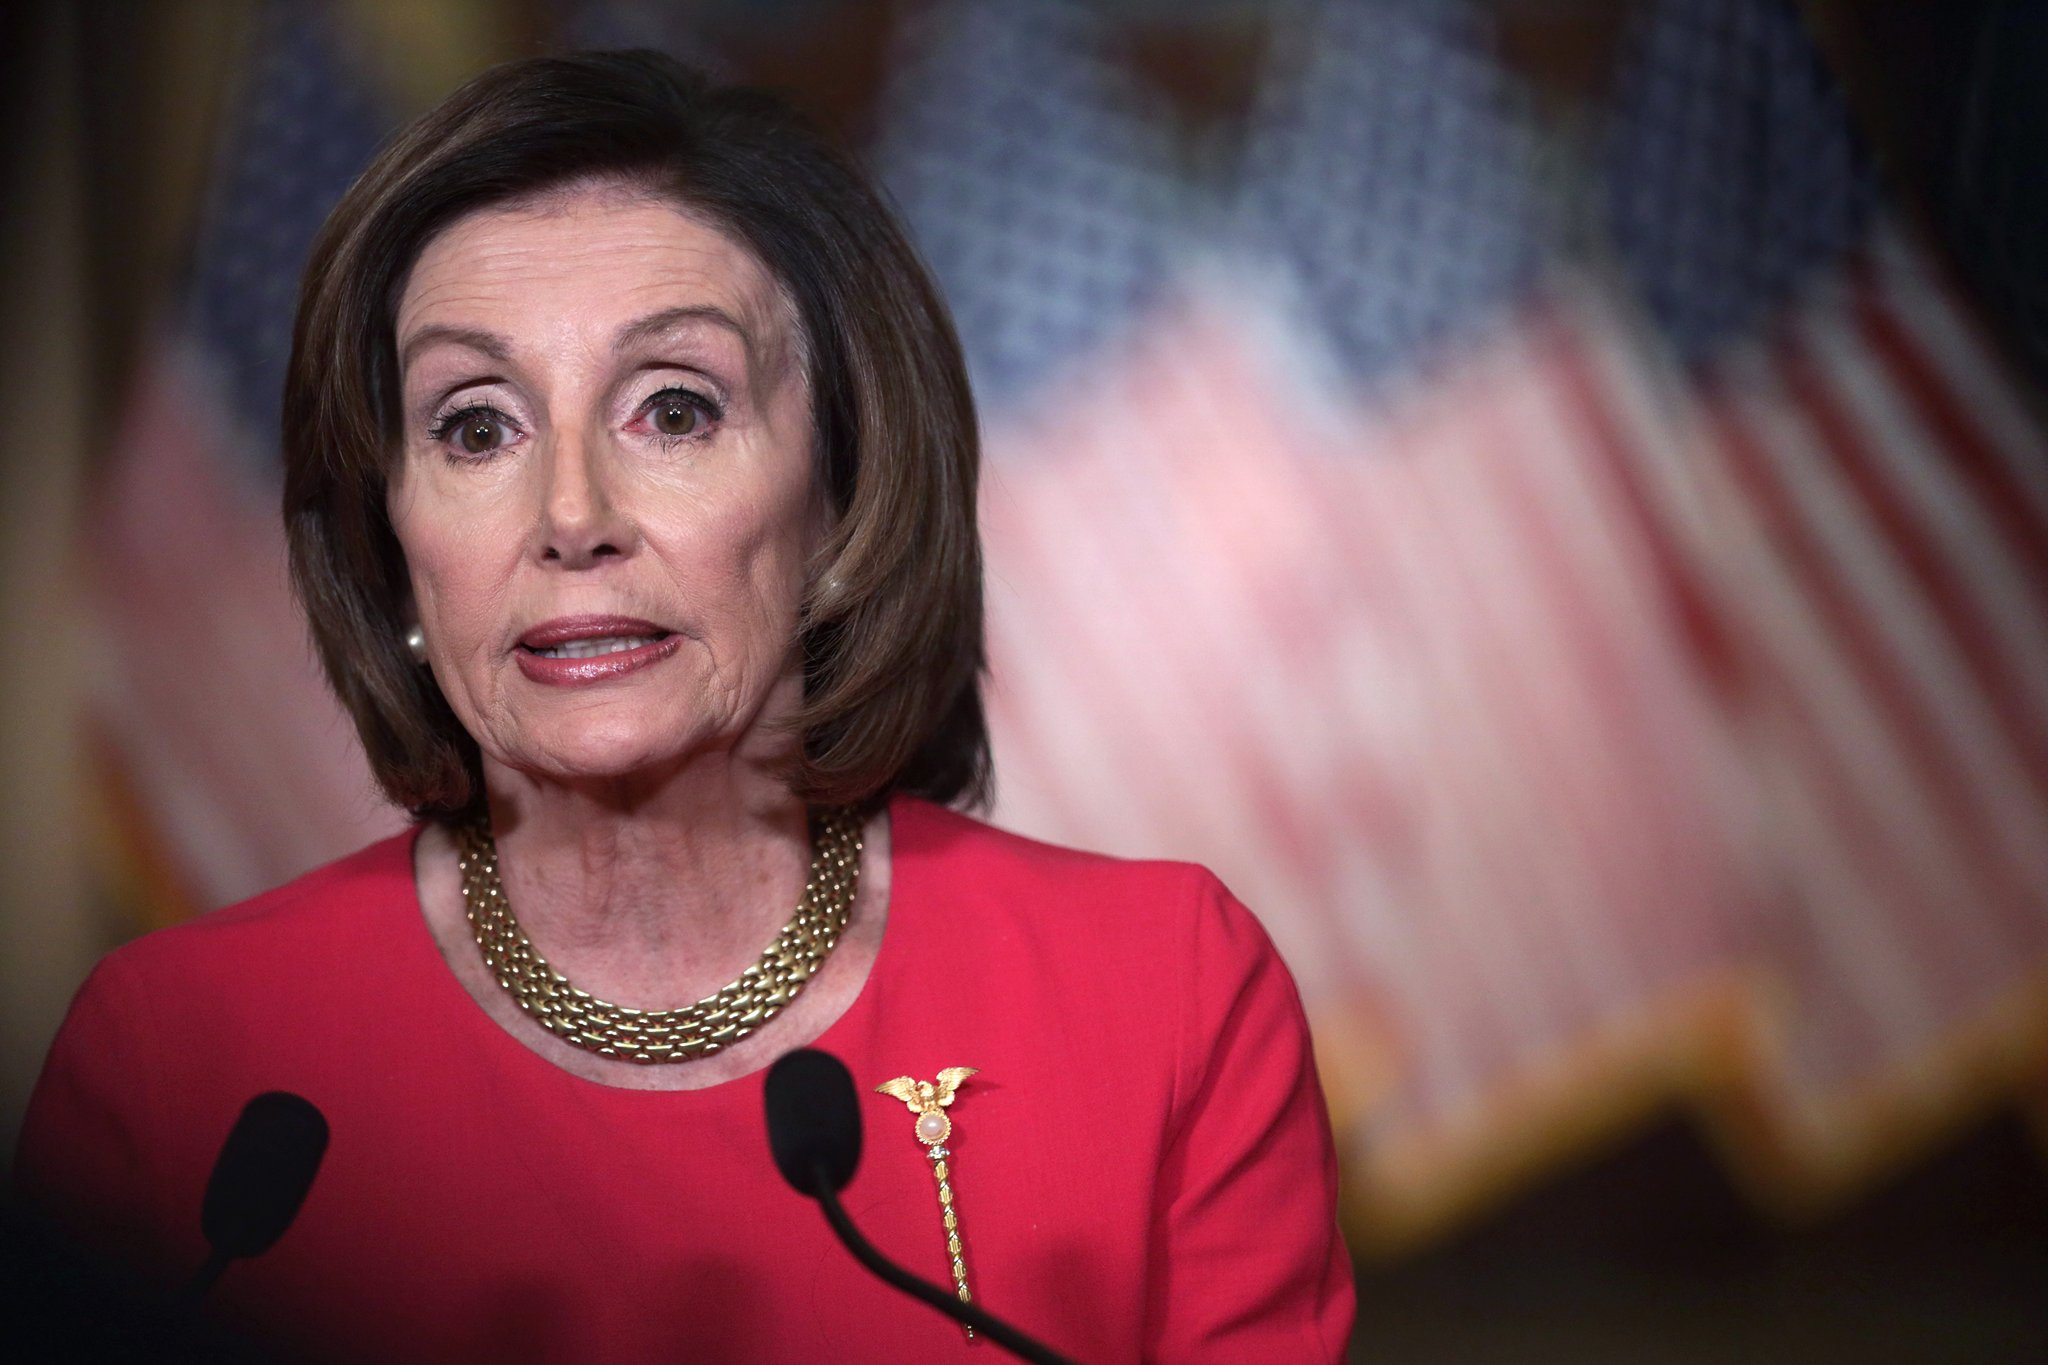 Happy Birthday To Nancy Pelosi. The Speaker of the House and Baltimore native turned 80.